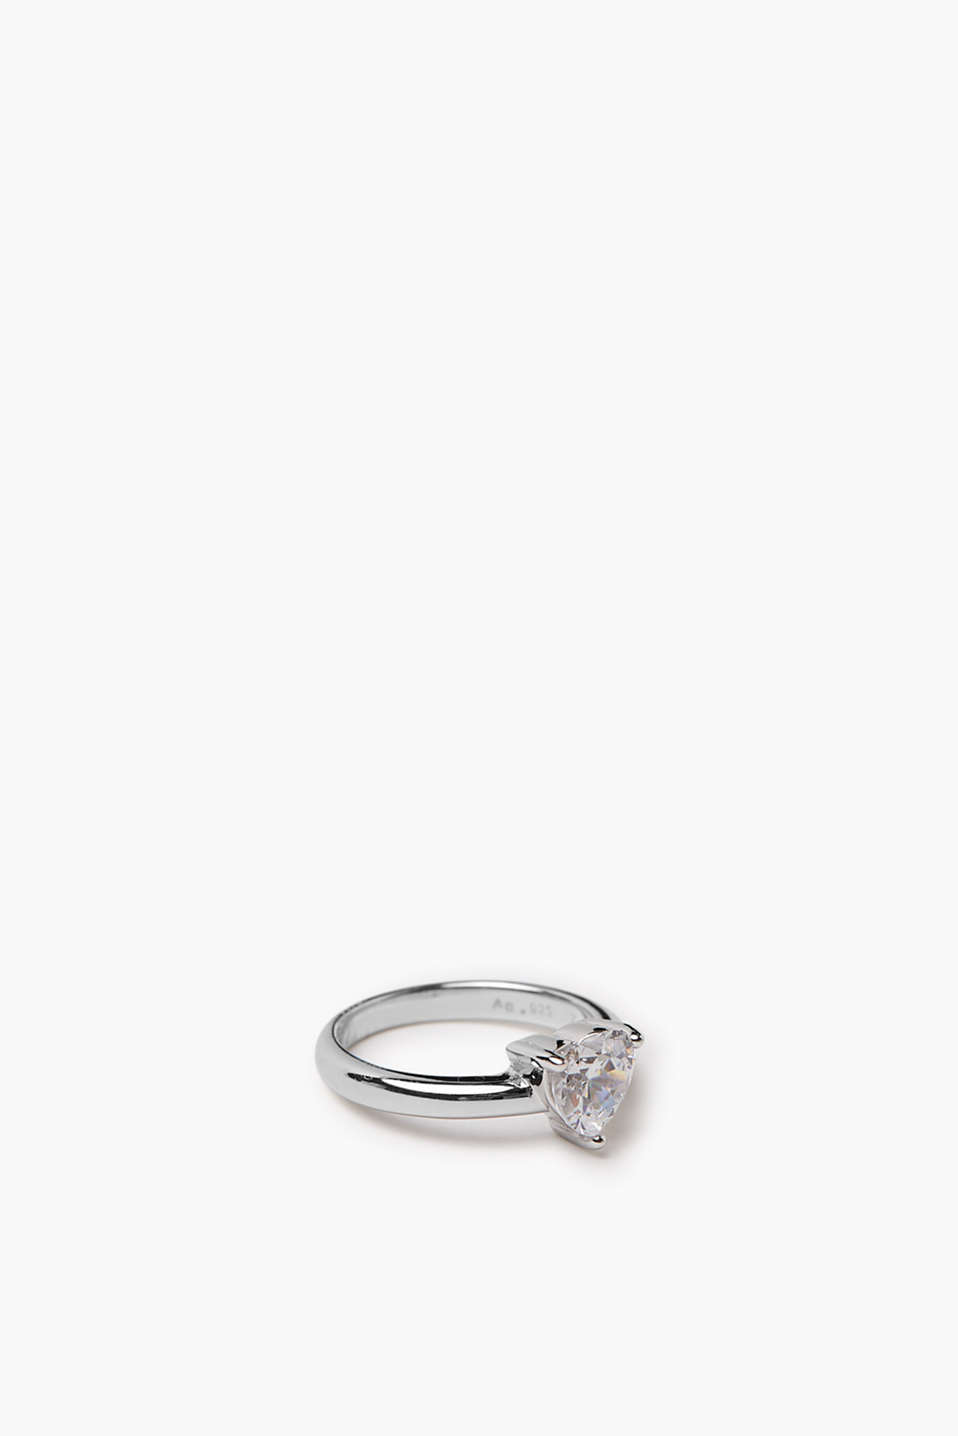 Ring with heart-shaped zirconia